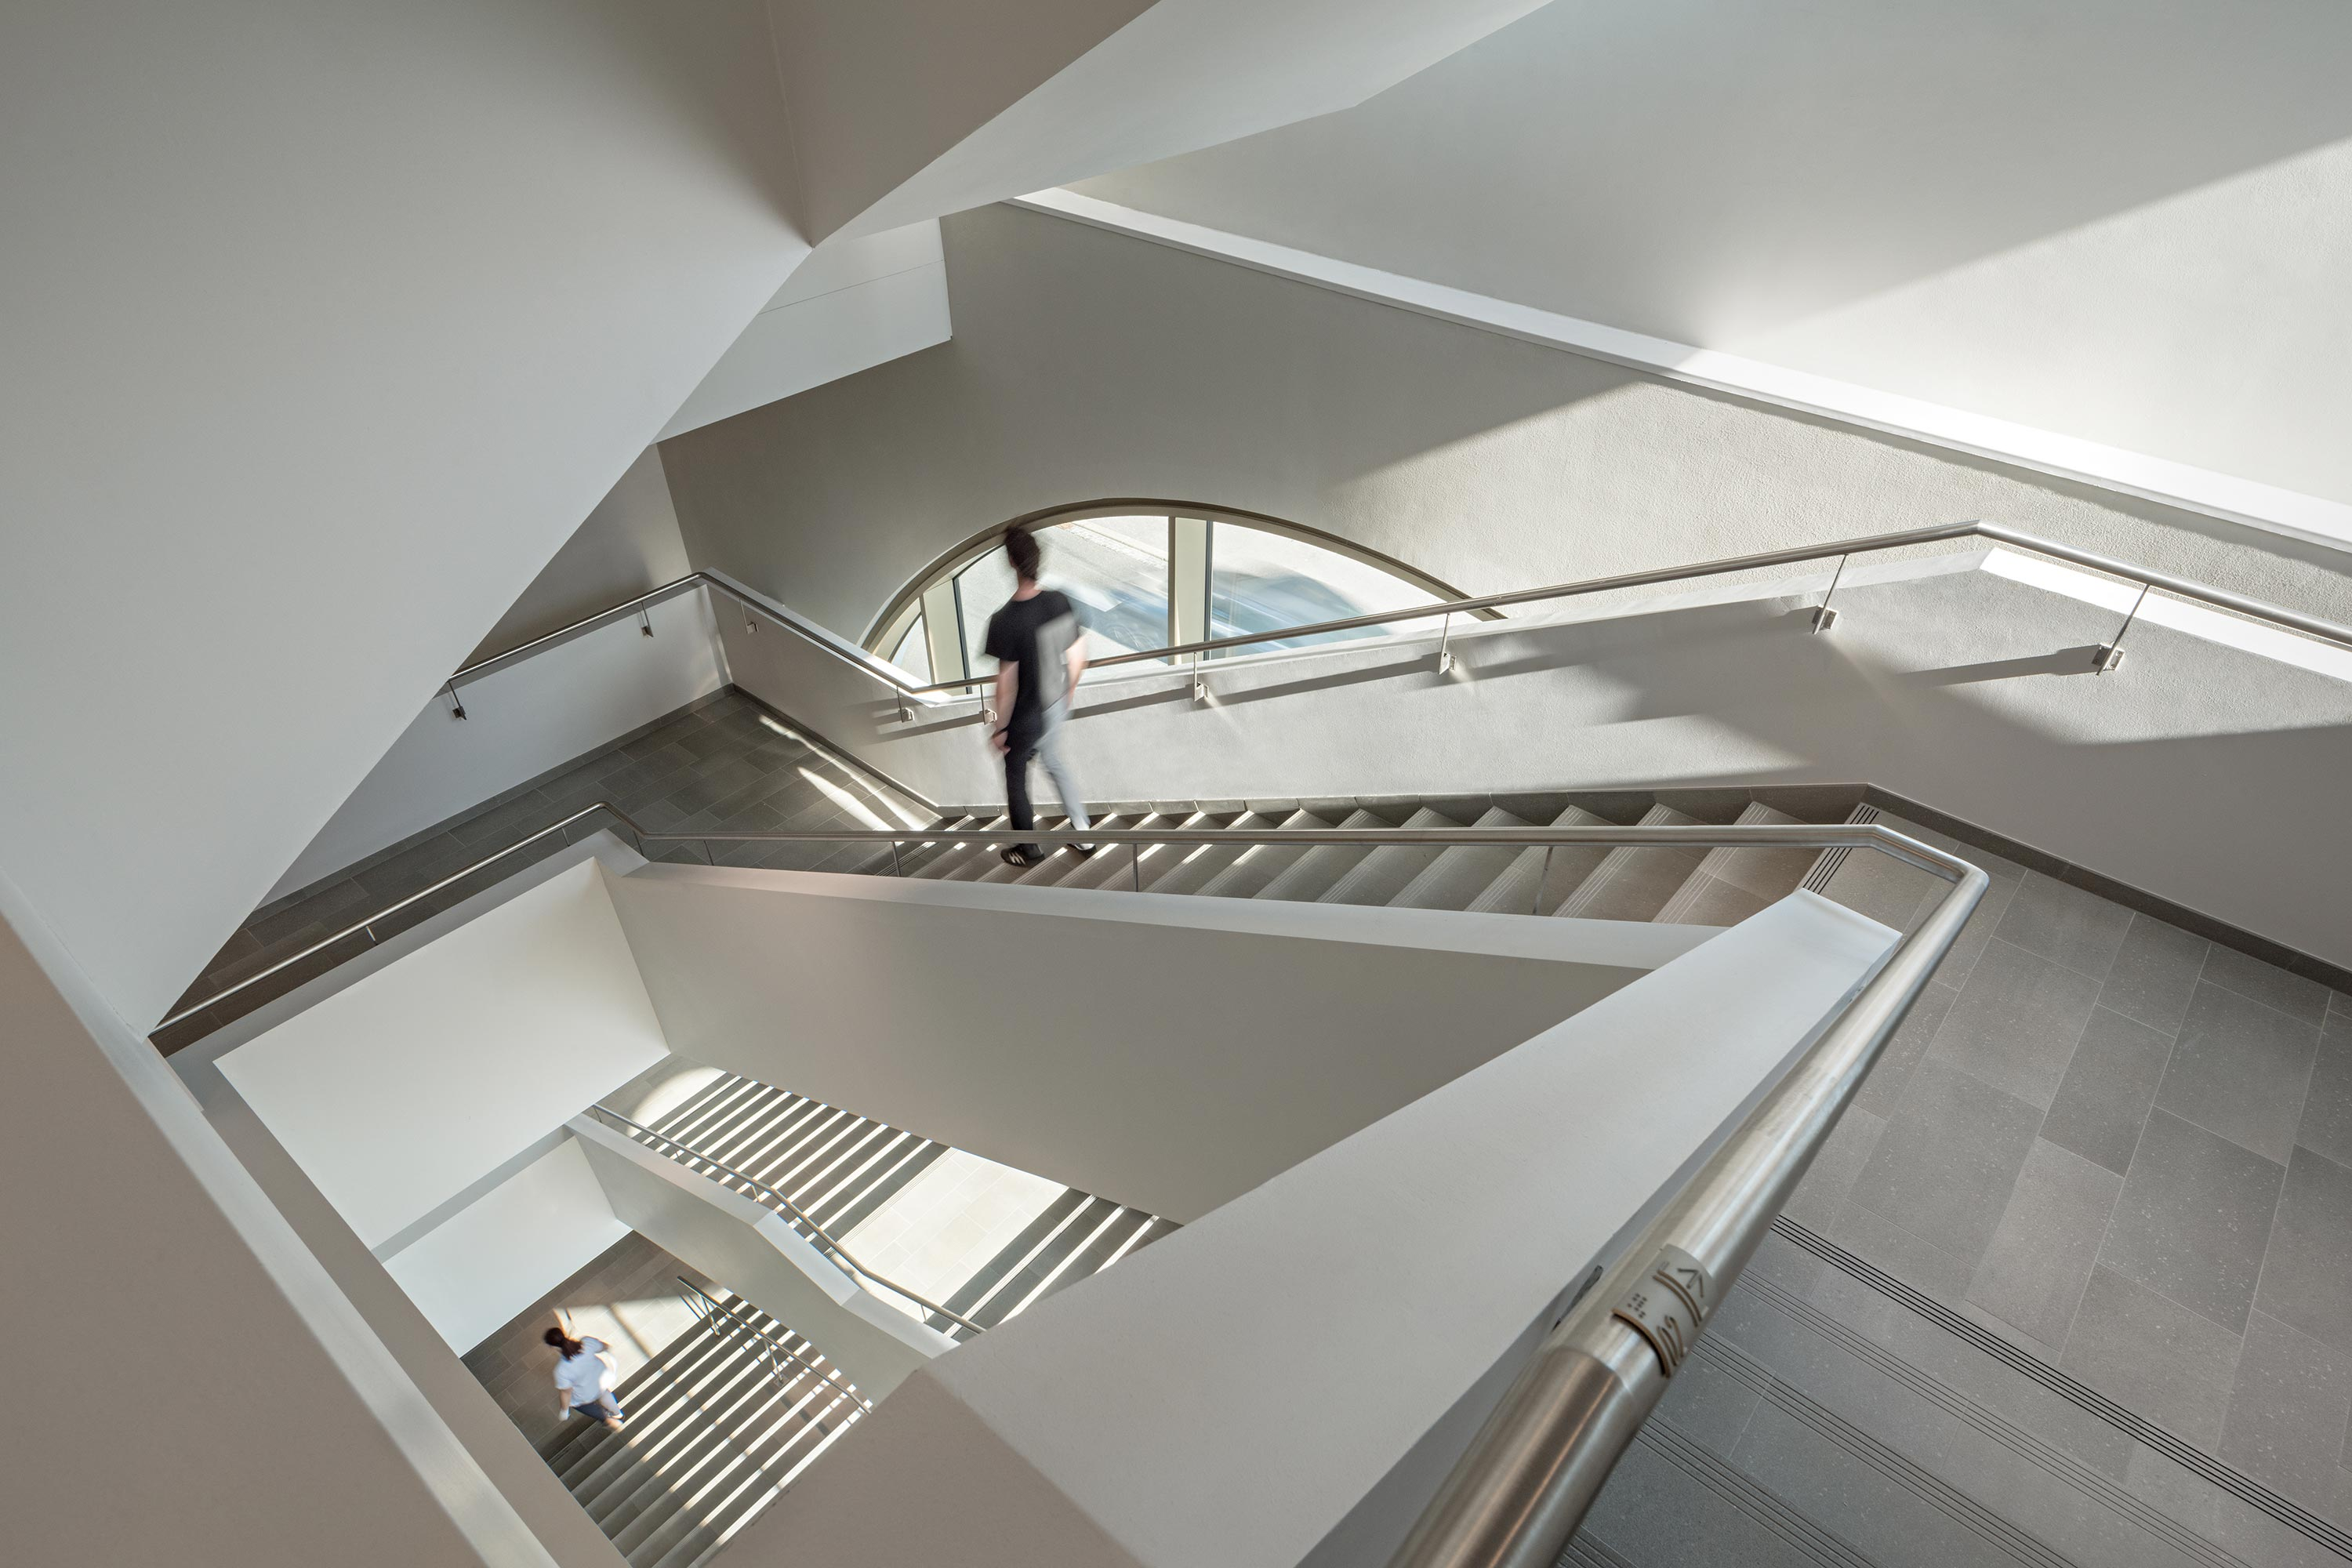 Institute building of Pharmacy. Photo: Hertha Hurnaus | Berger+Parkkinen Architekten